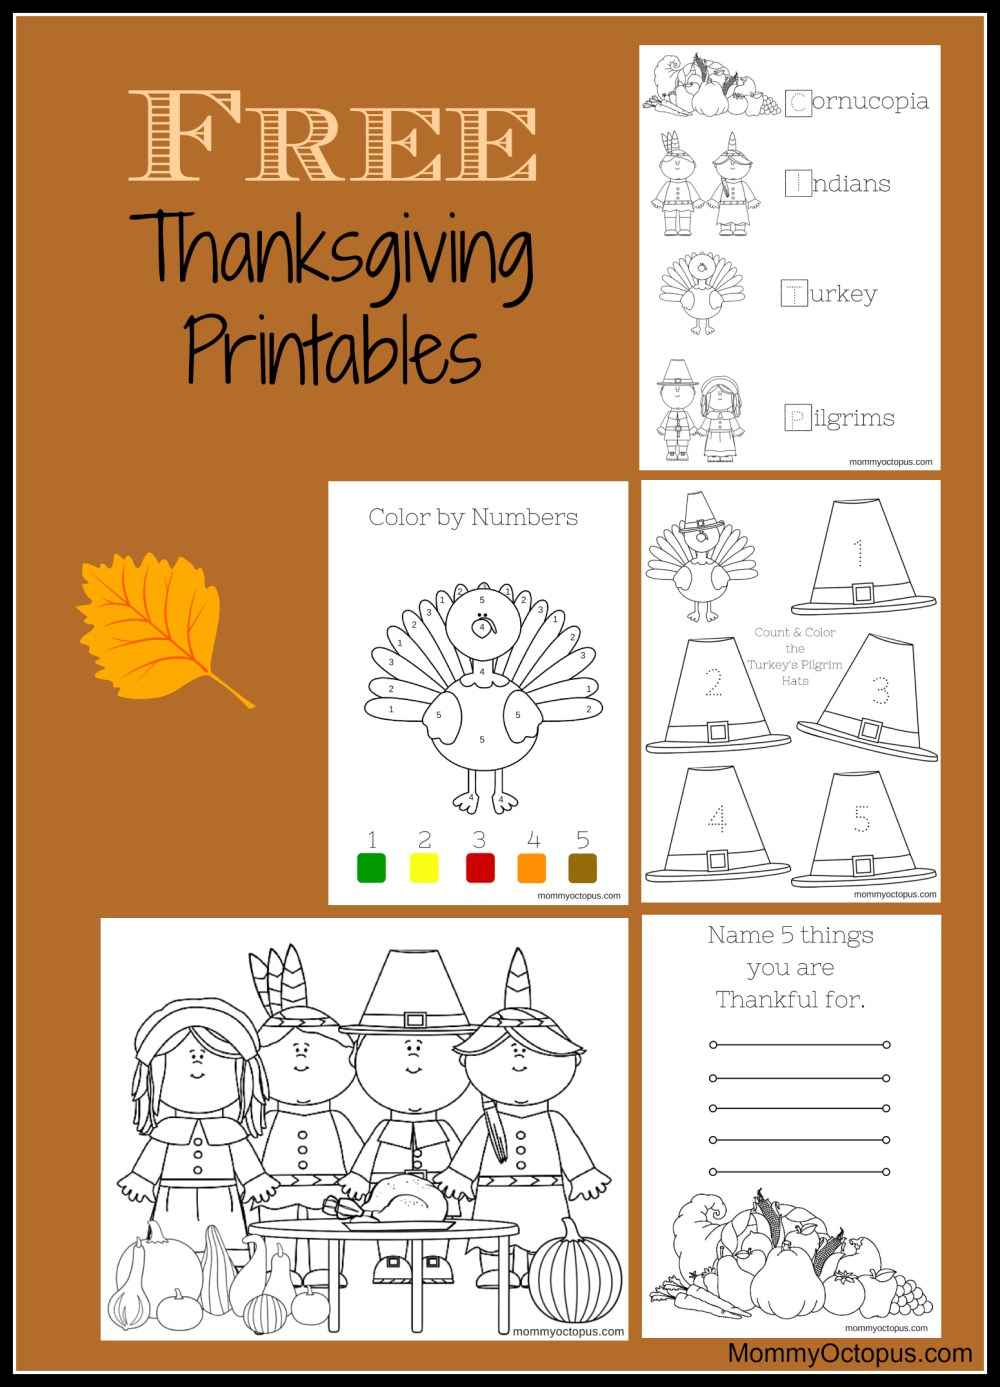 medium resolution of Free Thanksgiving Printable Activity Sheets! - Mommy Octopus